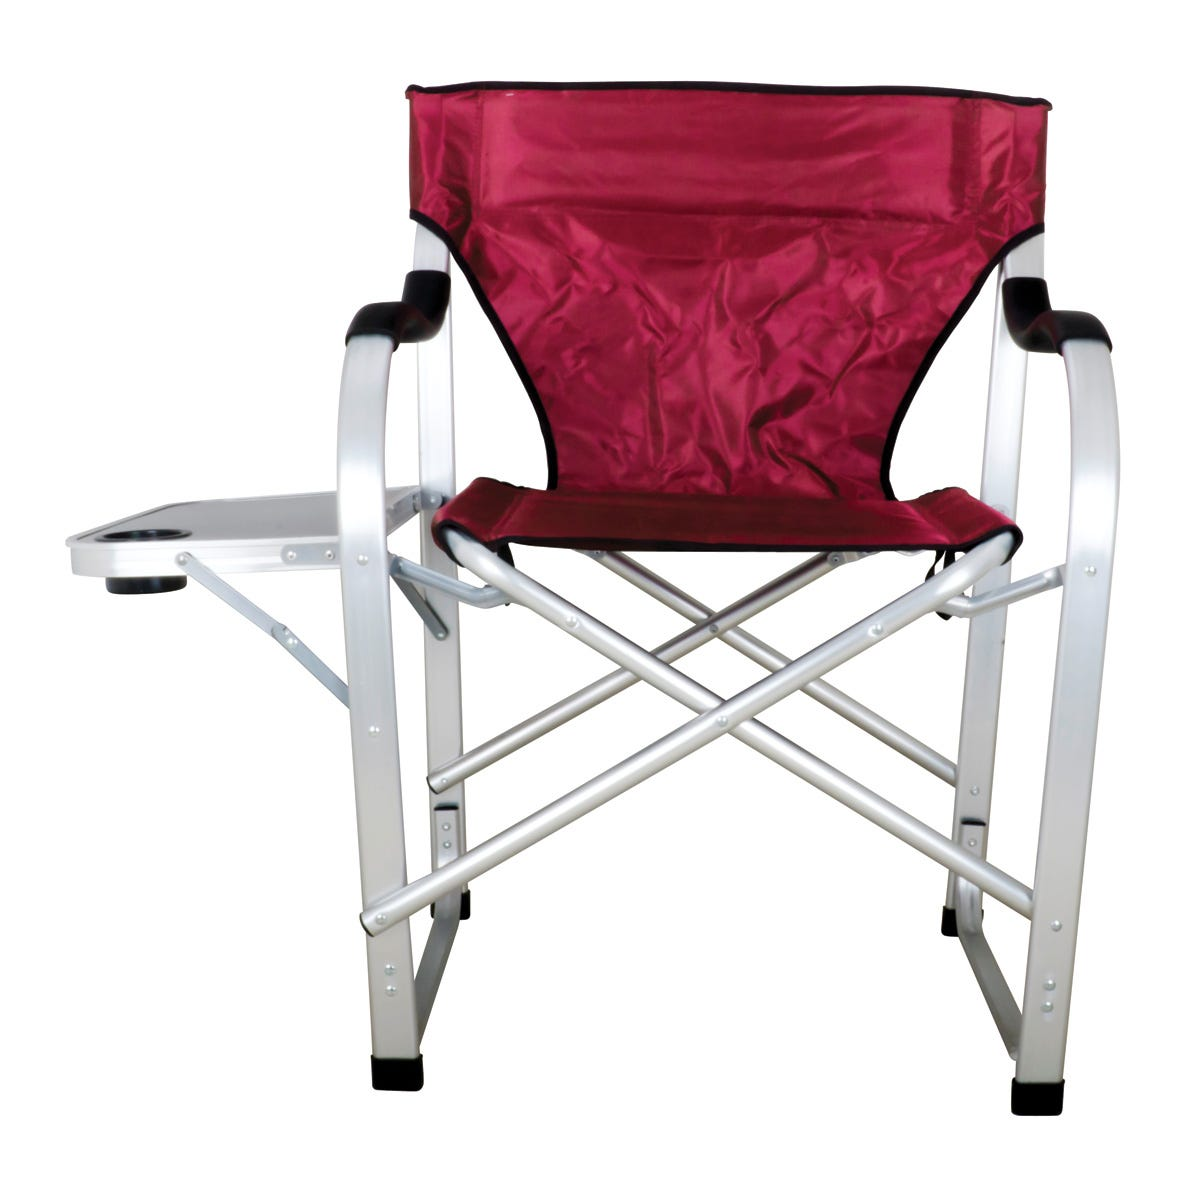 Heavy duty collapsible lawn chair burgundy from for Heavy duty lawn chairs